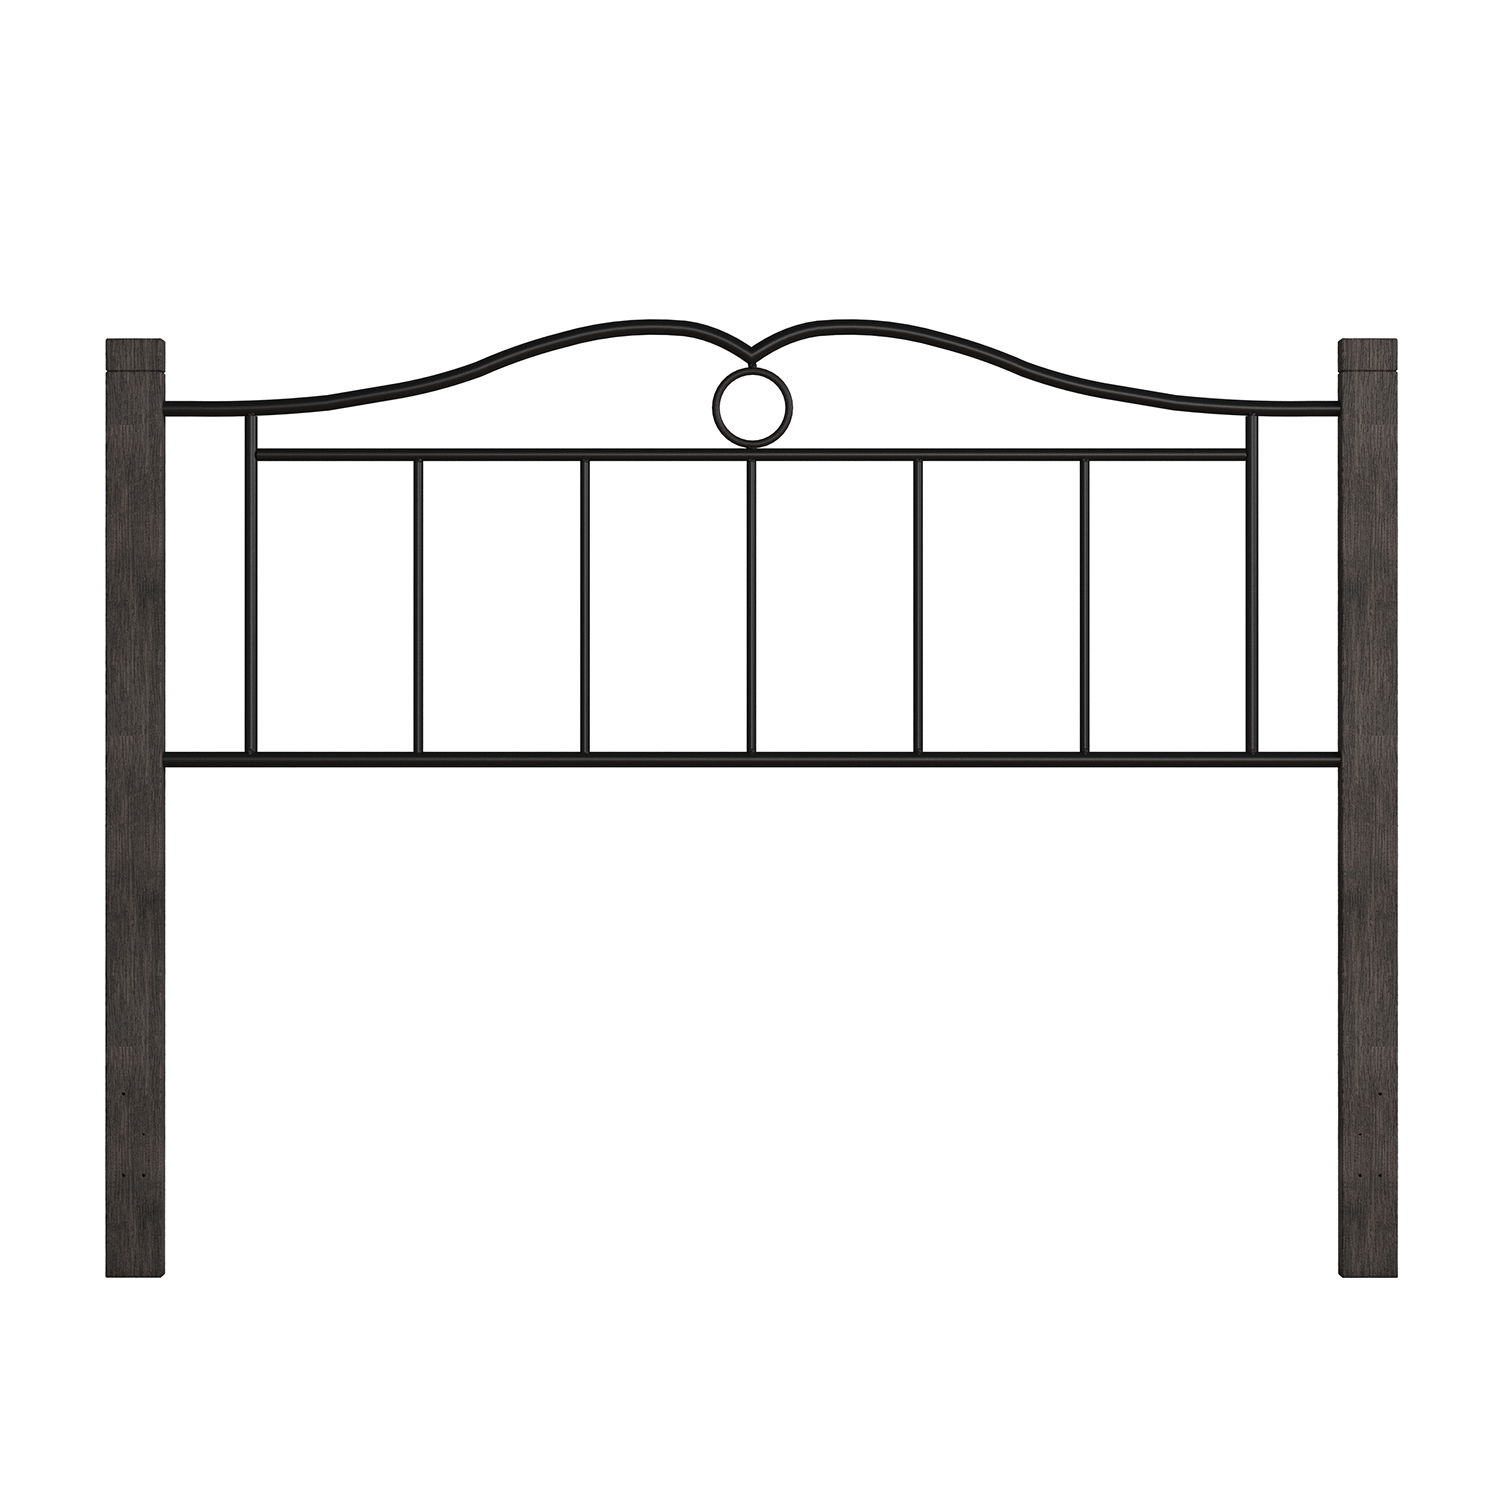 Hillsdale Dumont Metal Headboard with Double Arched Scroll Design - Textured Black/Brushed Charcoal